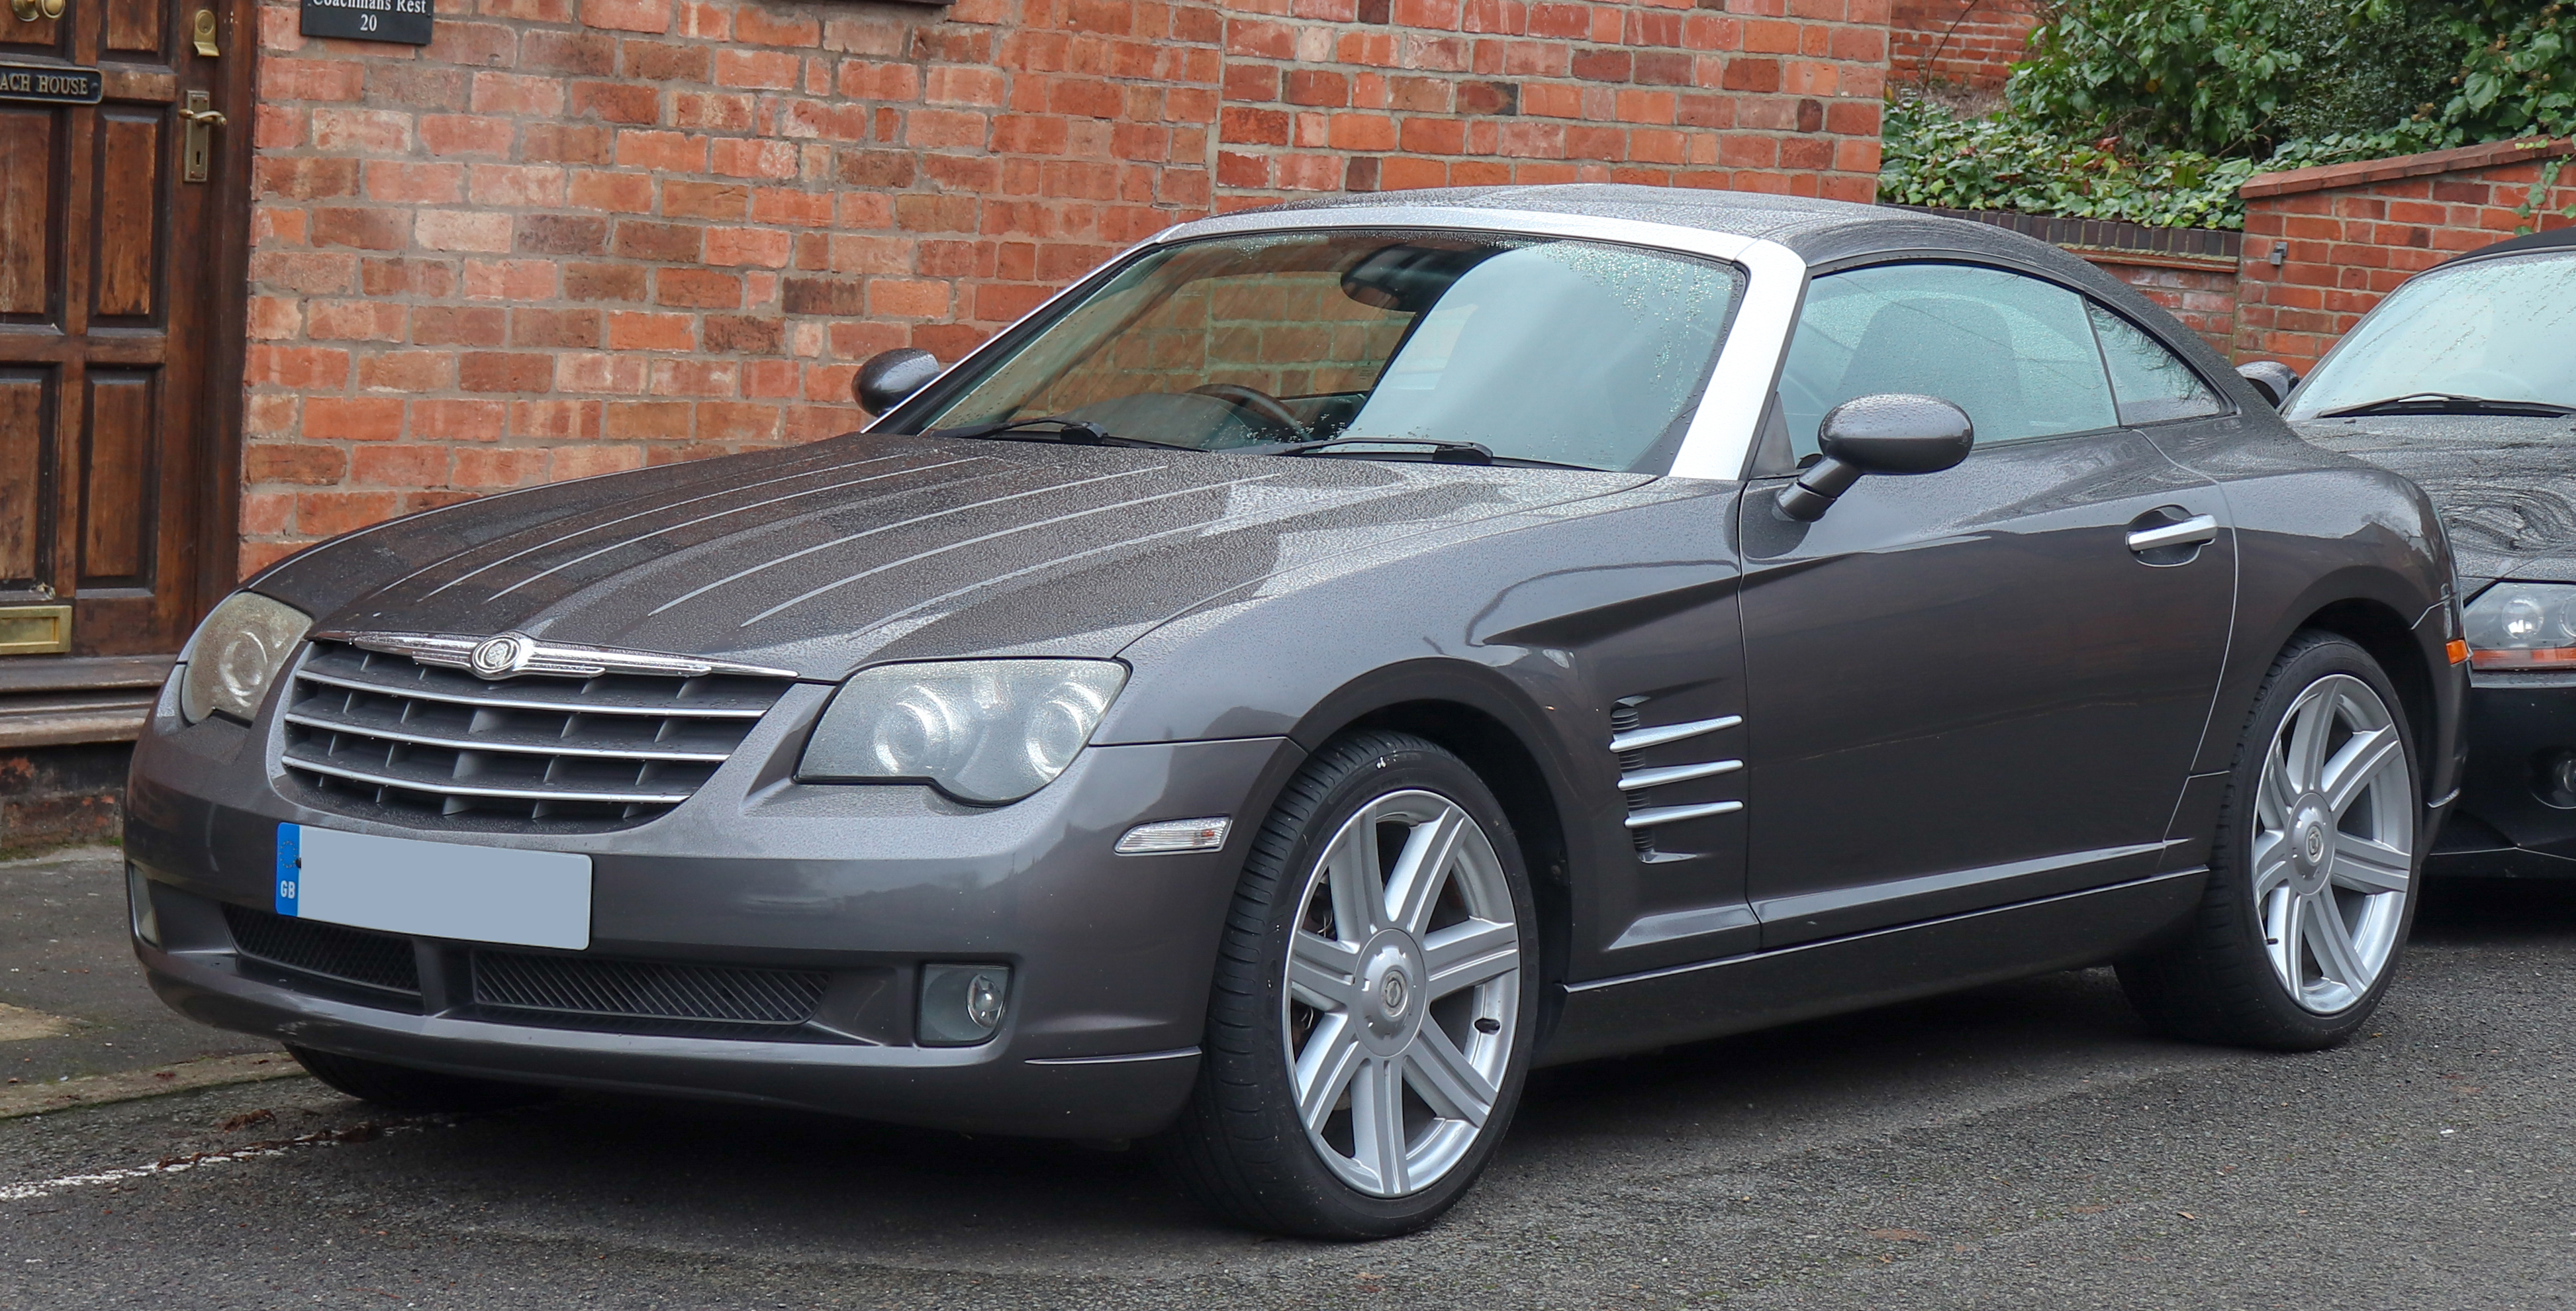 Chrysler Crossfire - Wikipedia